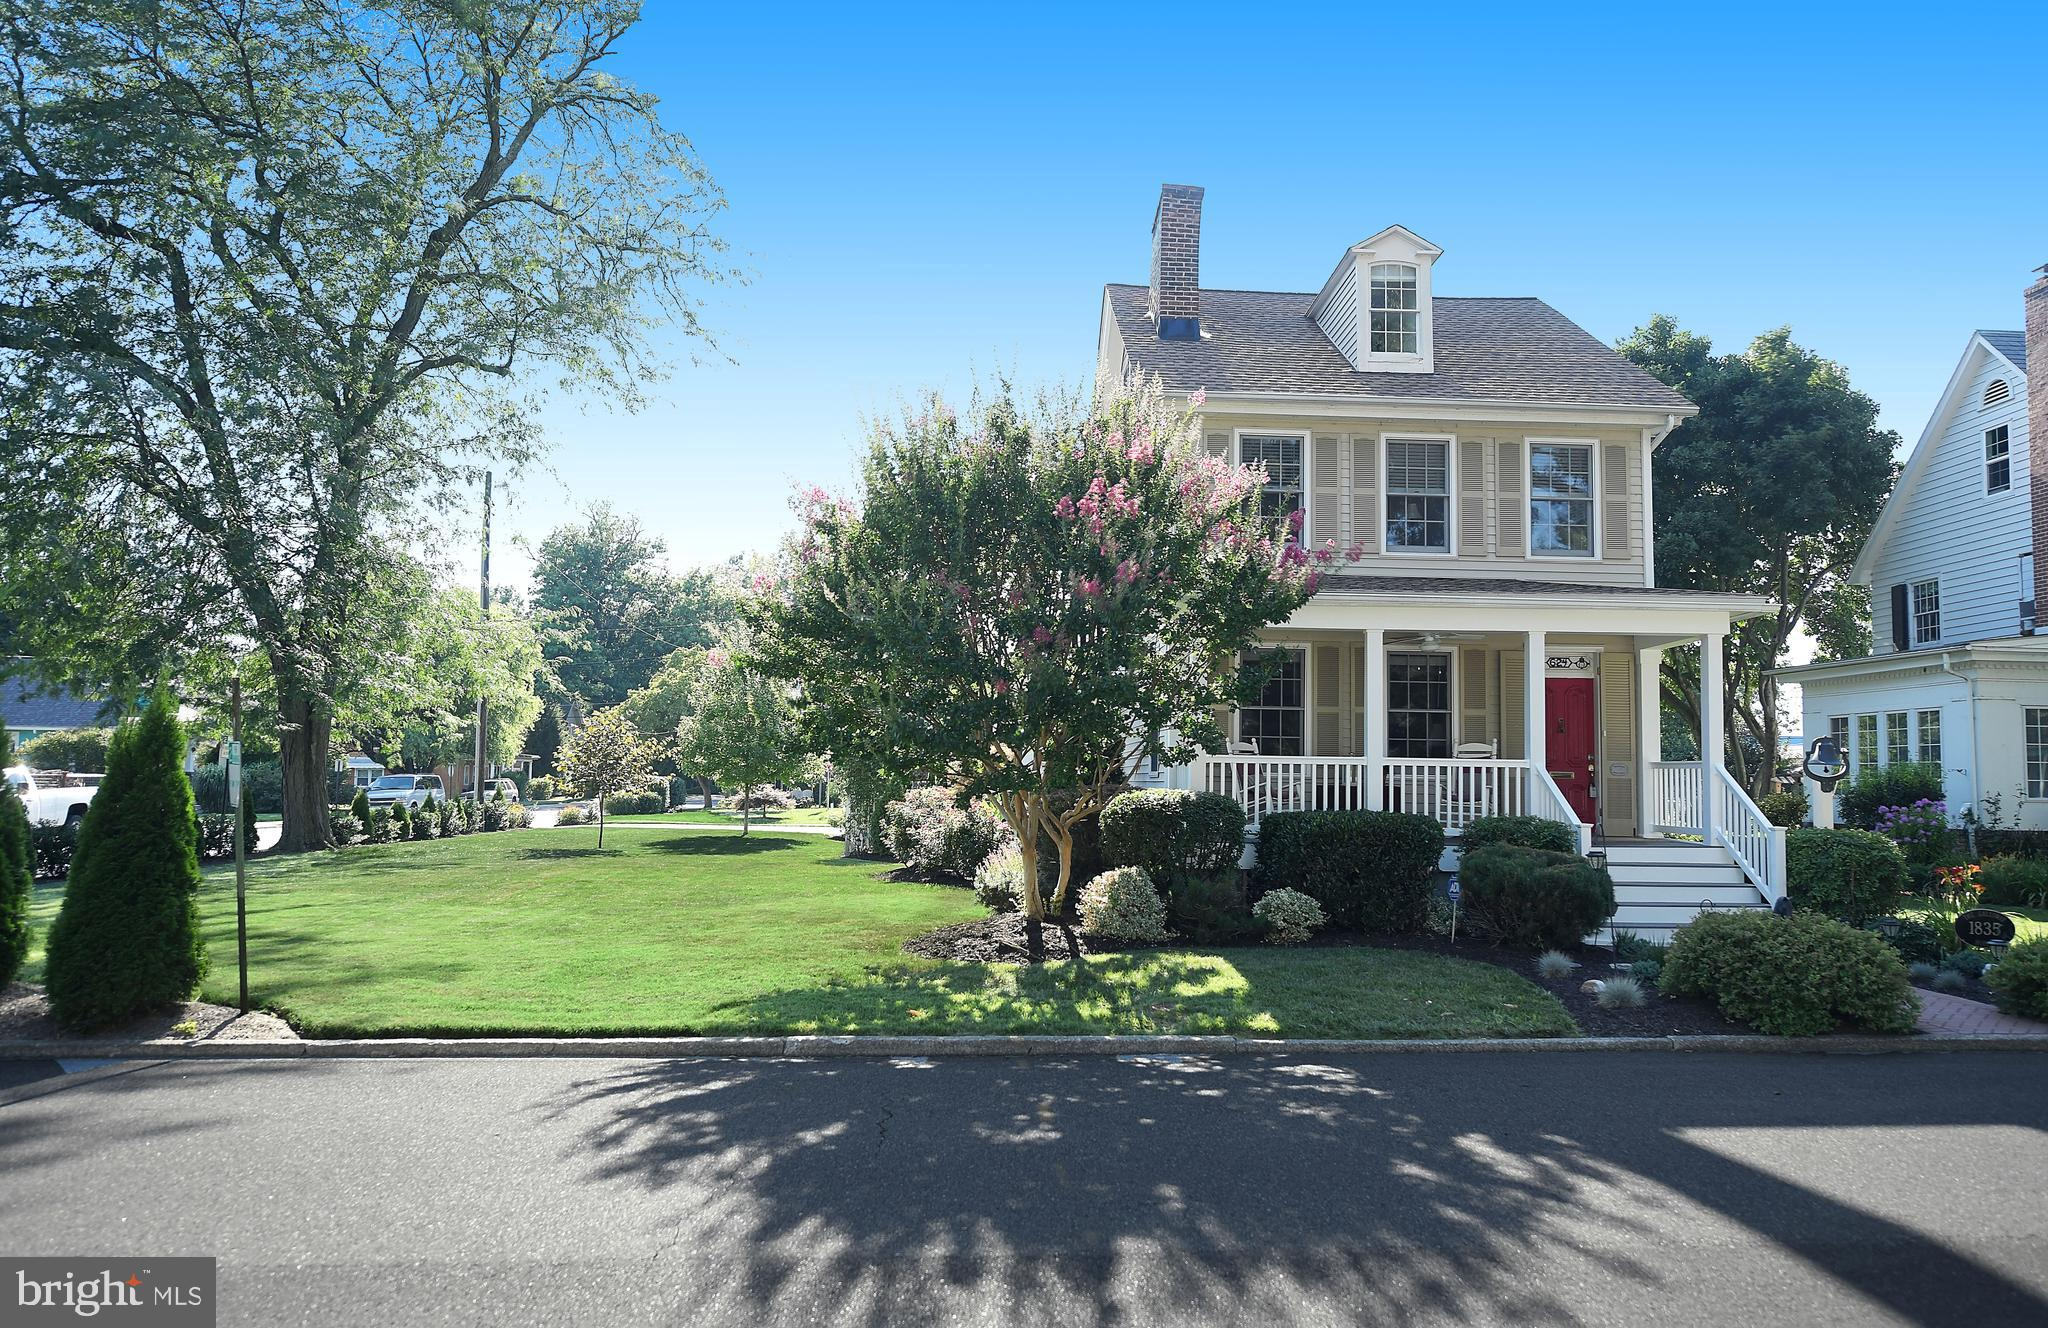 Own a piece of history in this gorgeous home nestled in the heart of downtown Havre de Grace.  Not only will you be wowed by all of the modern conveniences, such as, new roofing, updated gourmet kitchen, A/C, bathrooms, bay windows, composite decking and so much more, but you will relish in its old world charm.  Nestled a few blocks from the waterfront, just imagine taking a stroll to enjoy all that Havre de Grace has to offer.  This treasure is well appointed with Juliet balconies & large porches; all with composite decking.  The gleaming hardwood floors flow throughout the home, with three fireplaces, updated bathrooms, and a detached garage with plenty of storage and a separate office/exercise room.  The tranquil outdoor setting is the perfect place to relax with the waterfall sounds from the koi pond, patio, hot tub, and archways overflowing with flowers.  This beautiful home was featured in the Candlelight tour and was formally owned by the well-known Galloway family from 1835.  Presented with the Havre de Grace Historic Preservation Award, this type of gem rarely comes on the market.  This is your chance to own a piece of history today.